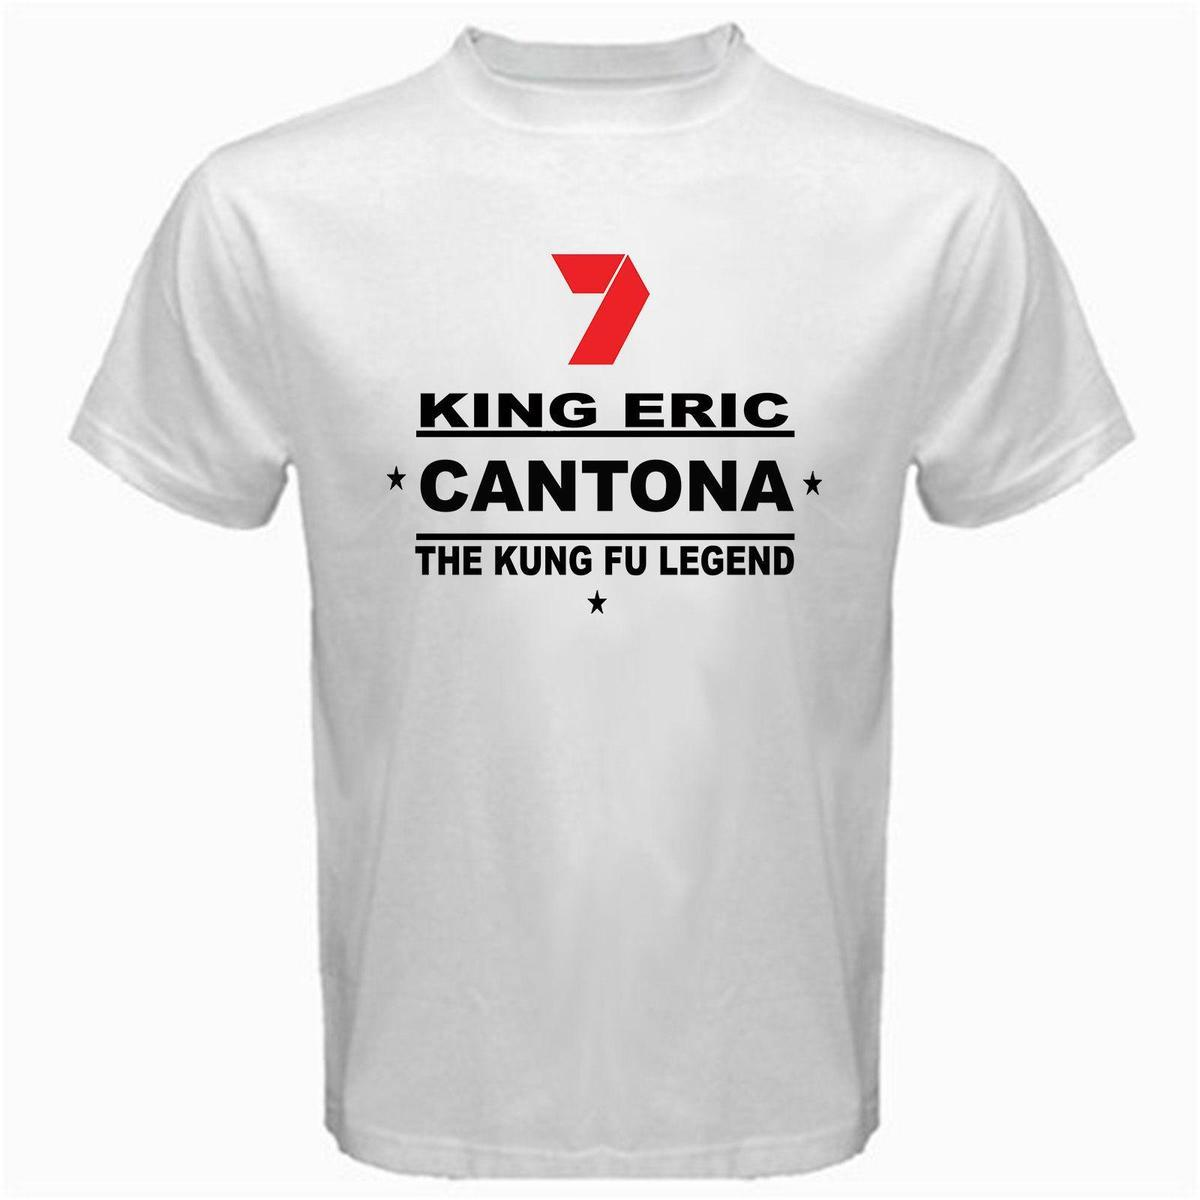 King Eric Cantona The Legend Kung Fu Style Tshirt White Humor T Shirts Funky T Shirt From Liguo0025 15 53 Dhgate Com